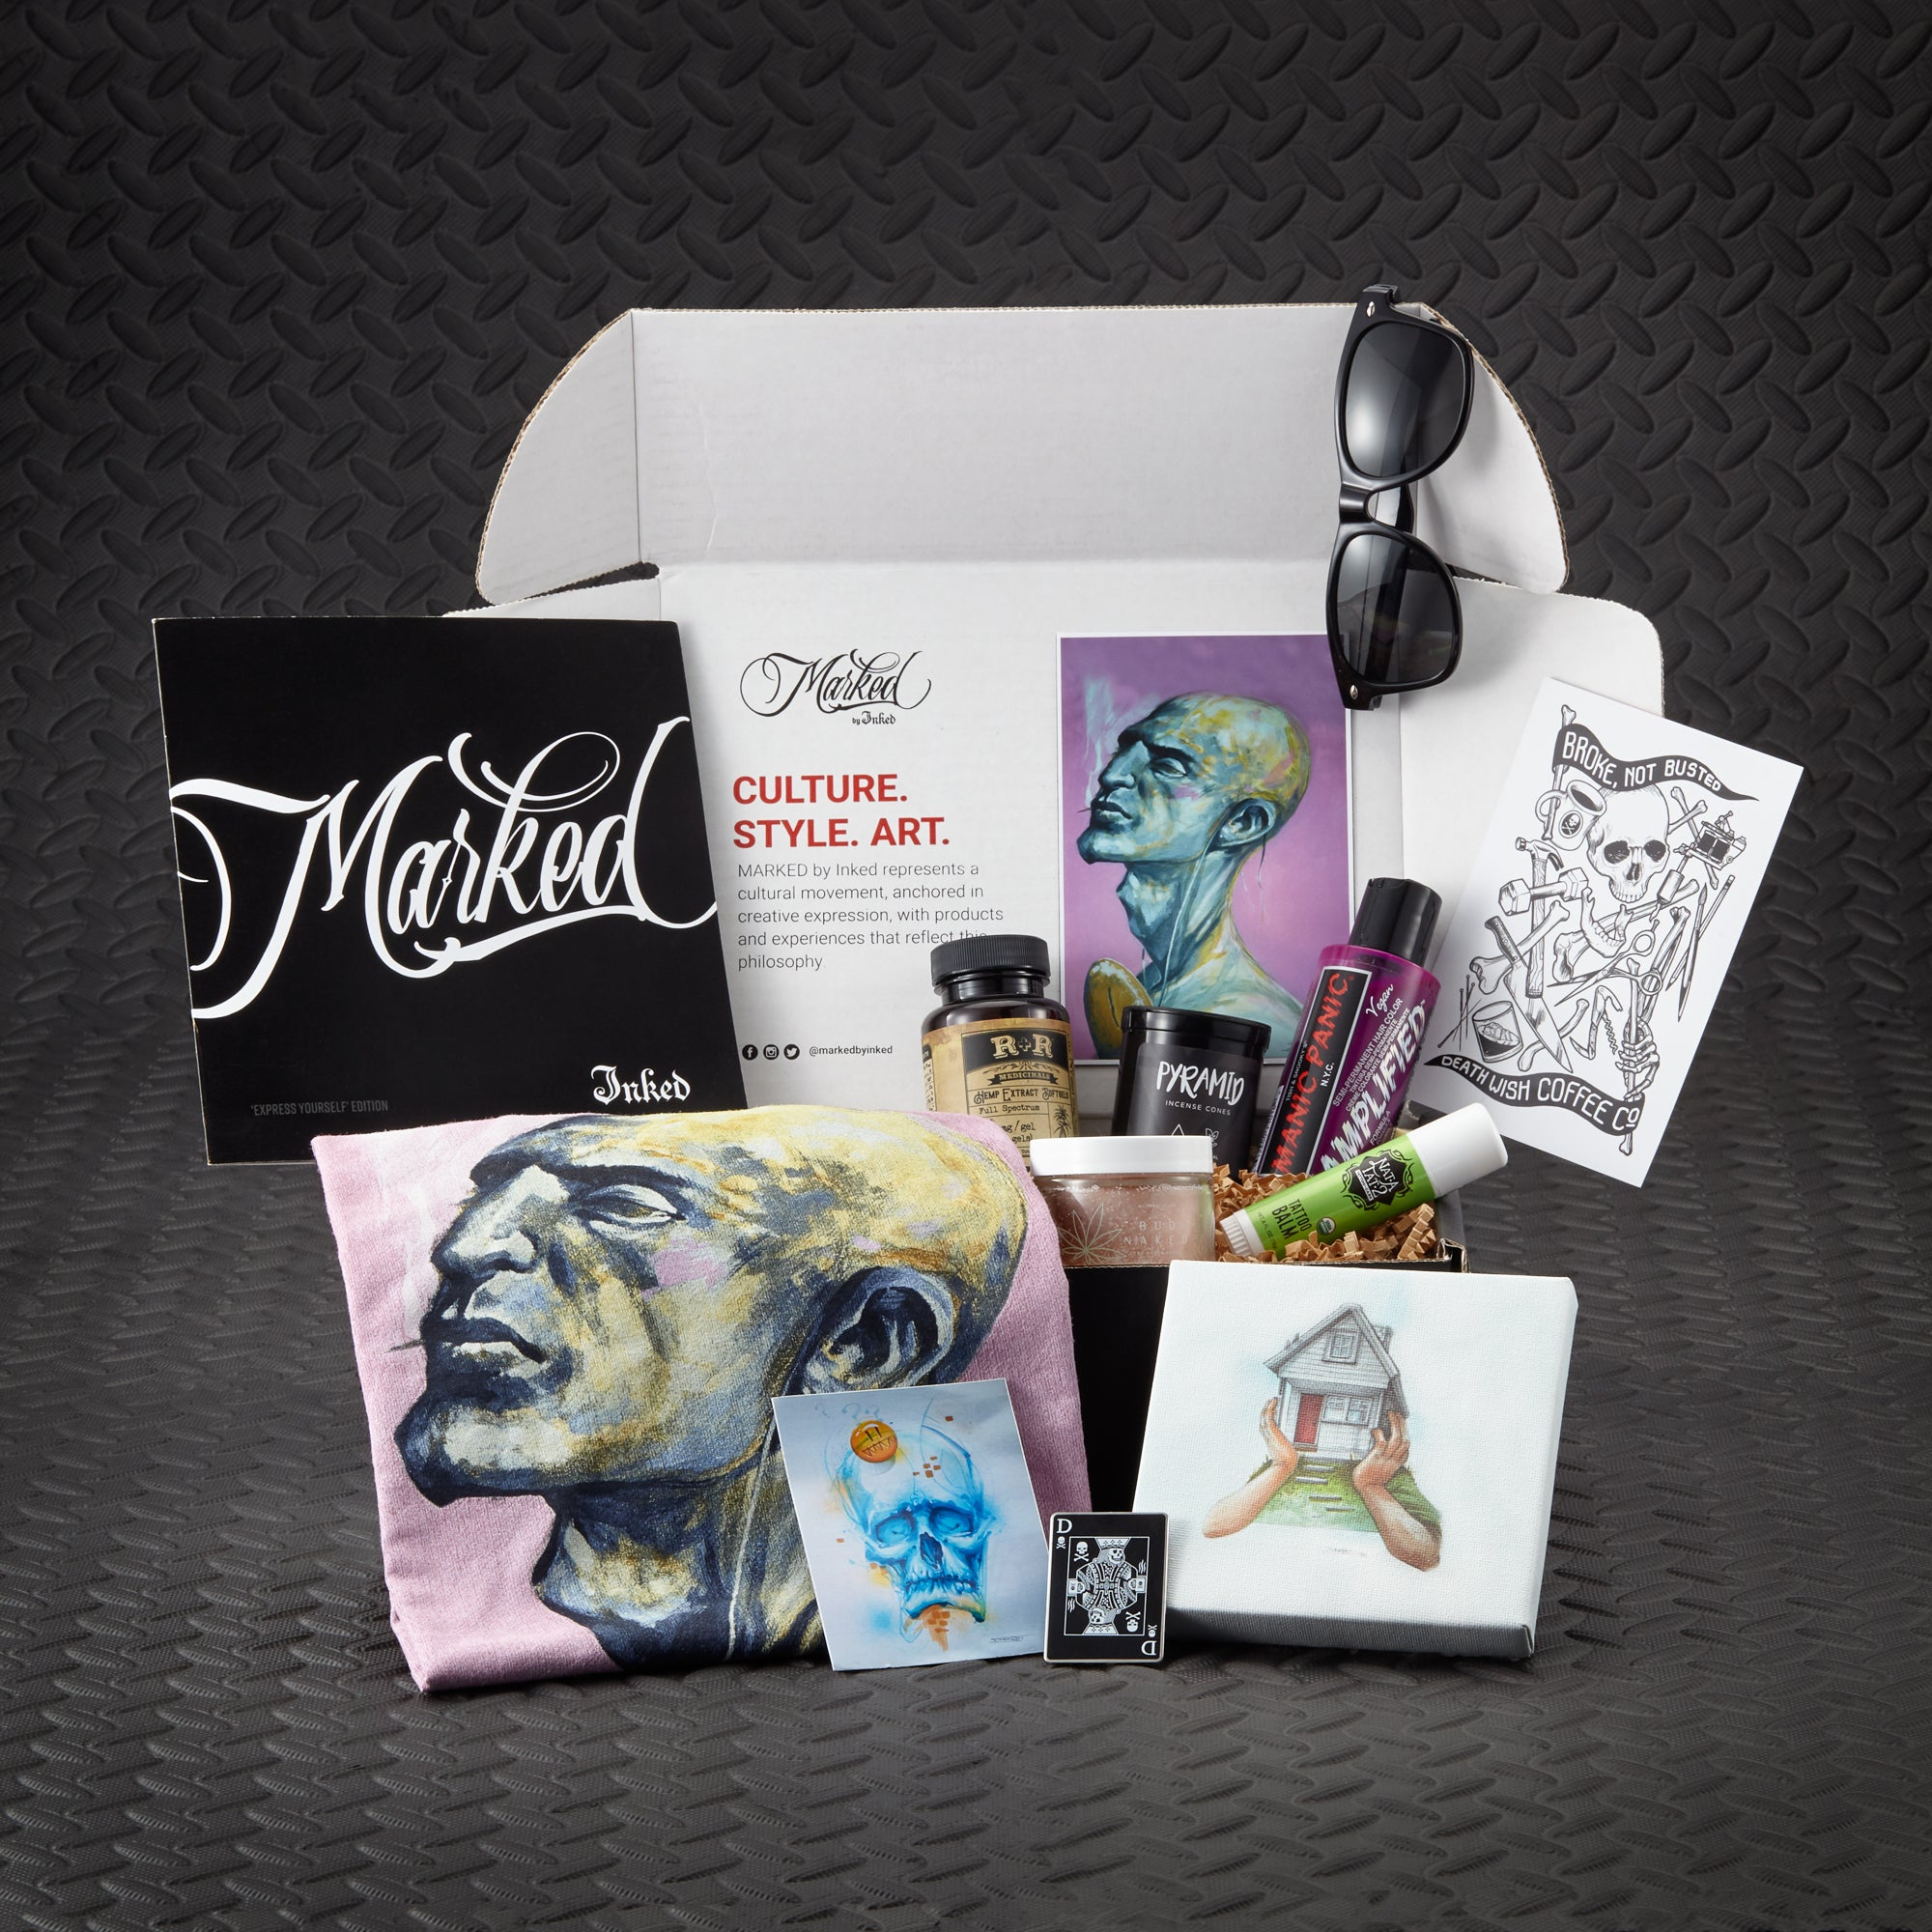 Marked by Inked tattoo culture subscription box. Featuring DJ Tambe